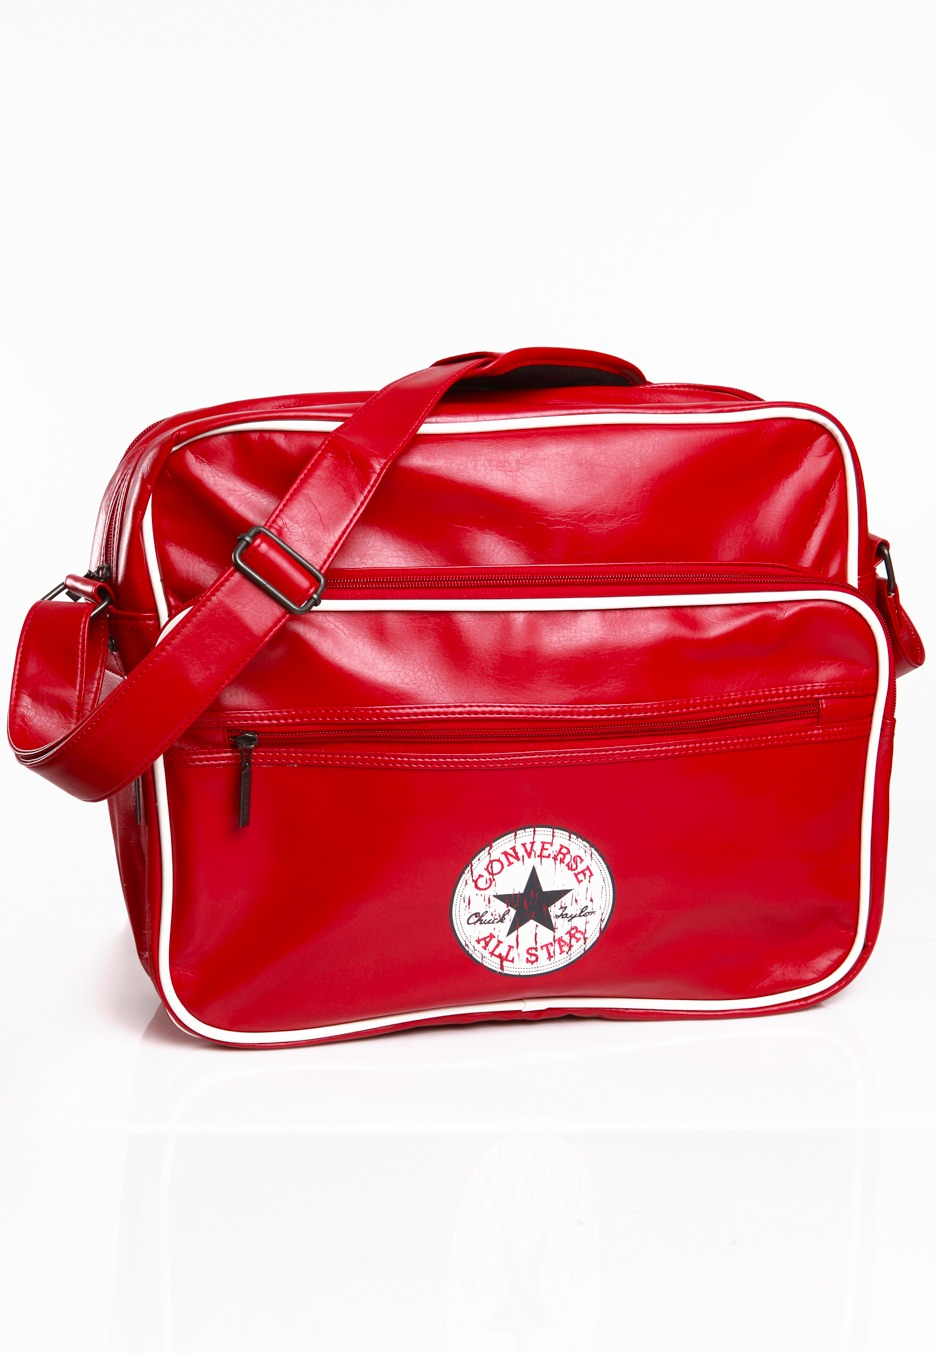 converse red bag